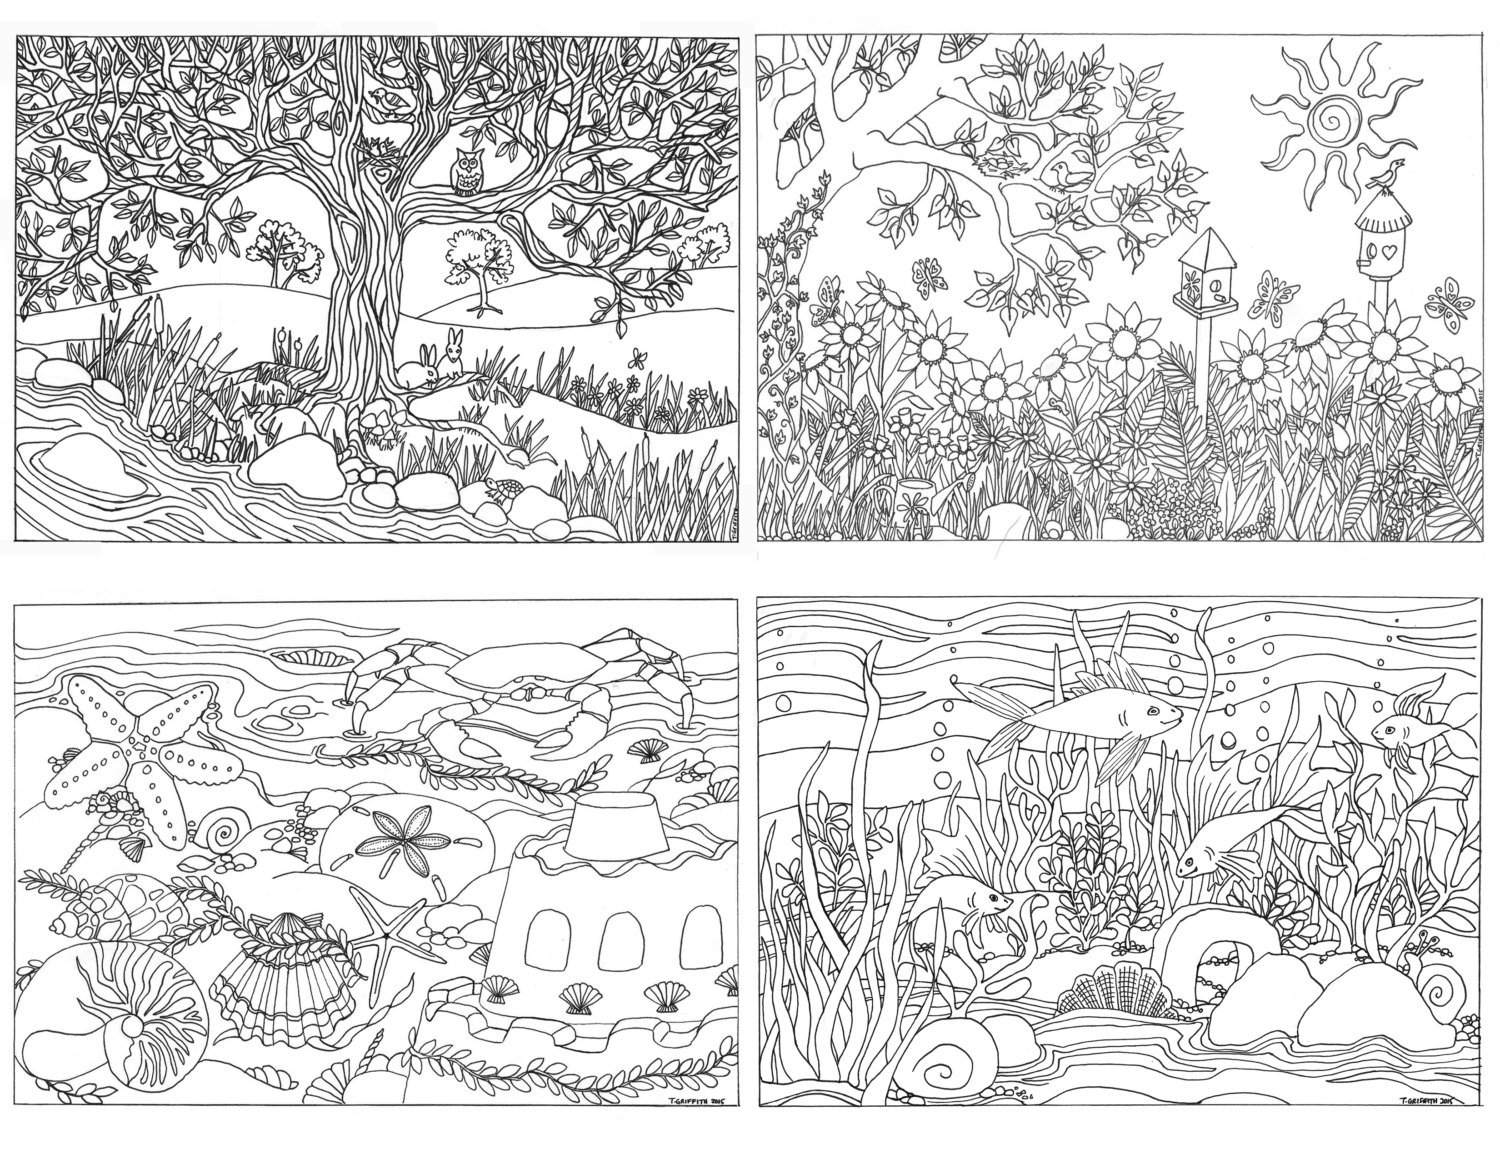 coloring worksheets nature get this free preschool nature coloring pages to print p1ivq worksheets coloring nature